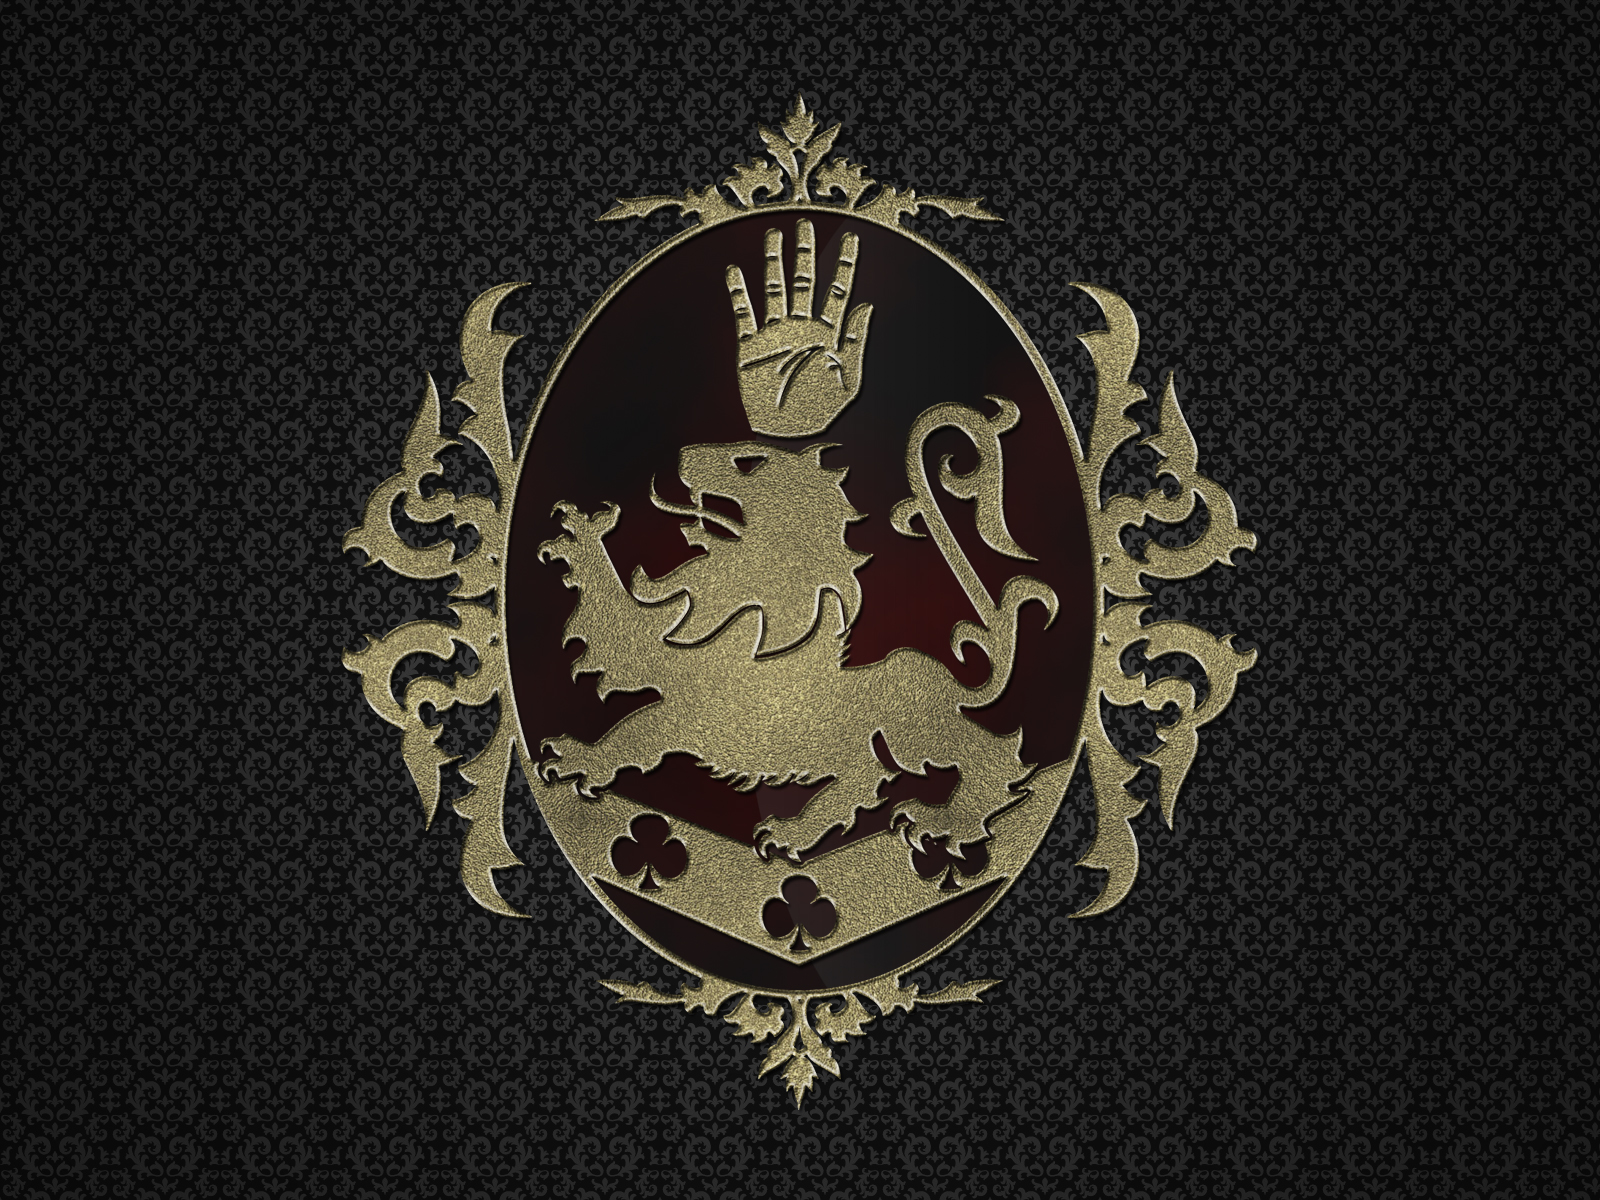 The Cullen Family Crest By Wolverine080976 On Deviantart